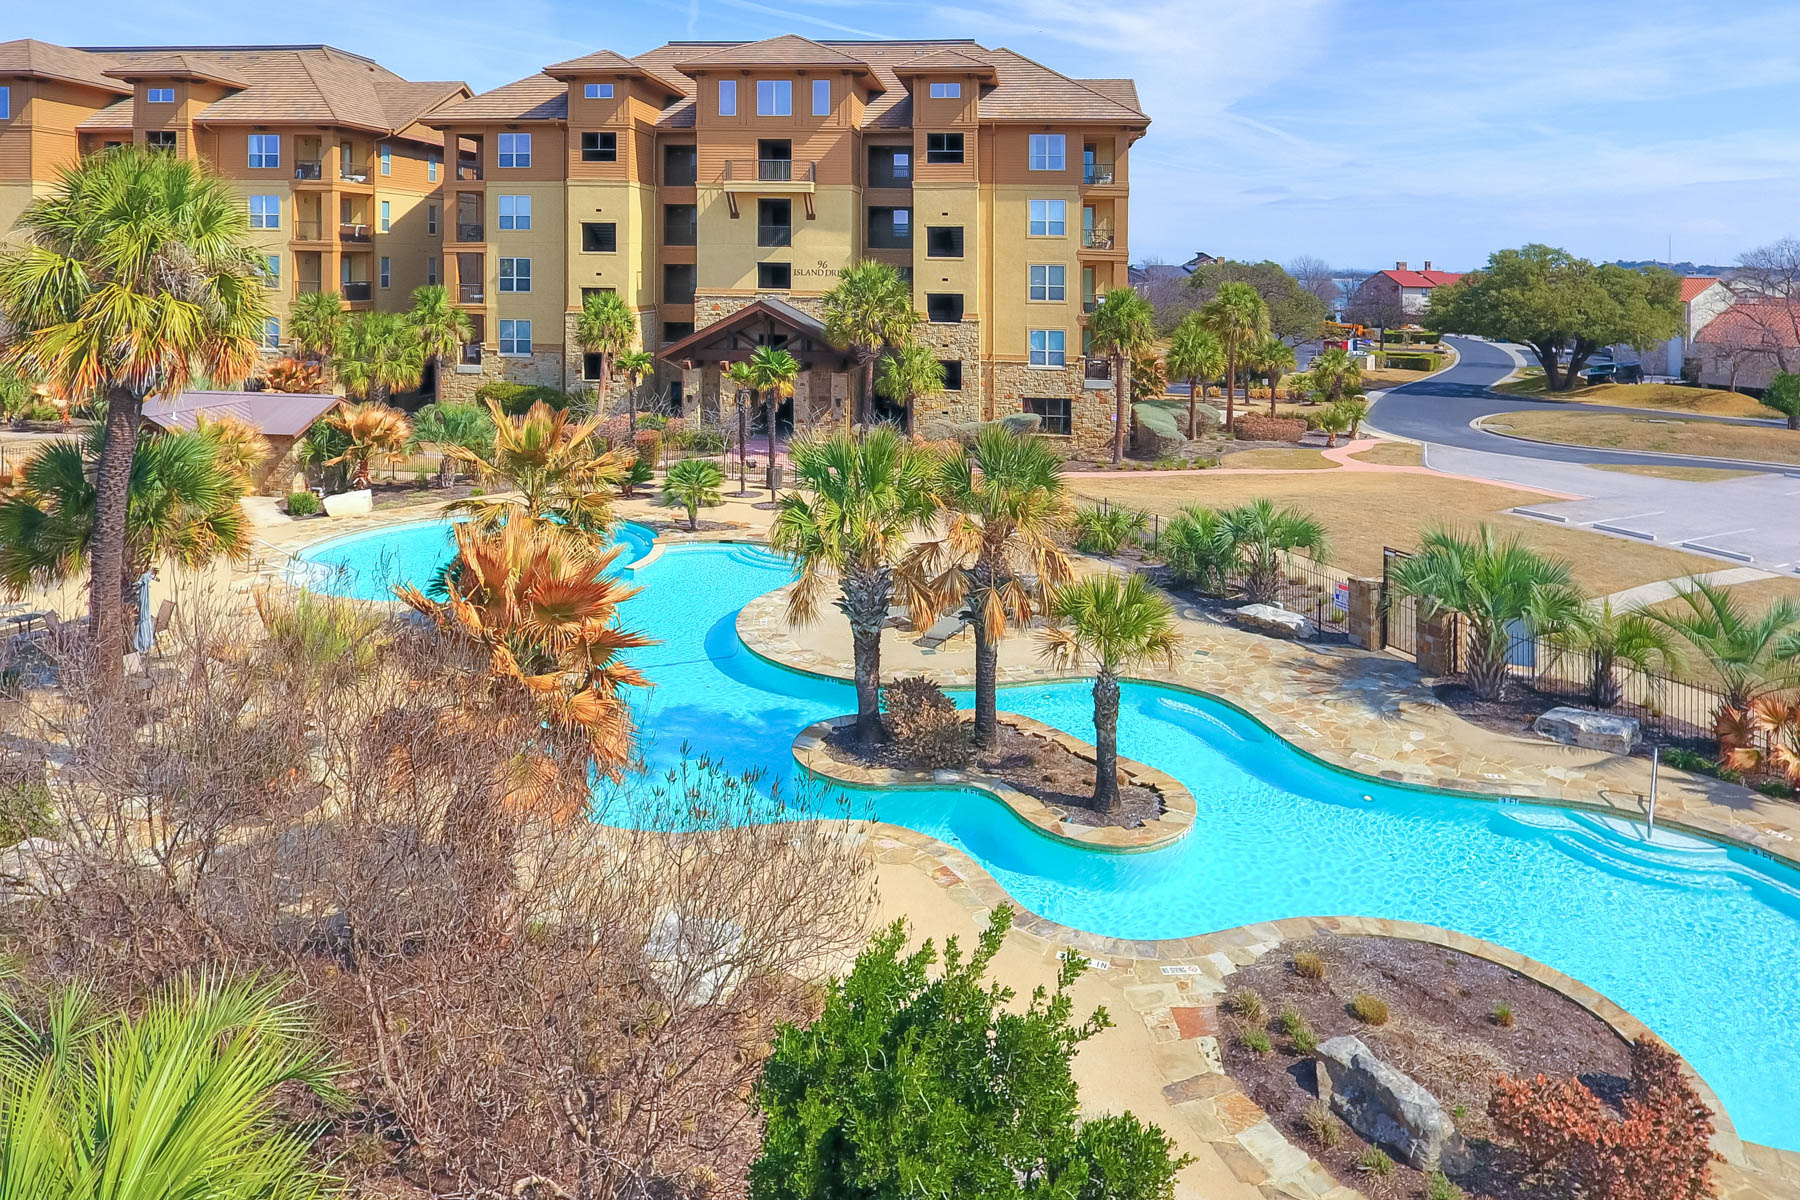 Condominium for Sale at Water's Condo with all Horseshoe Bay Resort Amenities 96 Island Drive #33 Horseshoe Bay, Texas 78657 United States